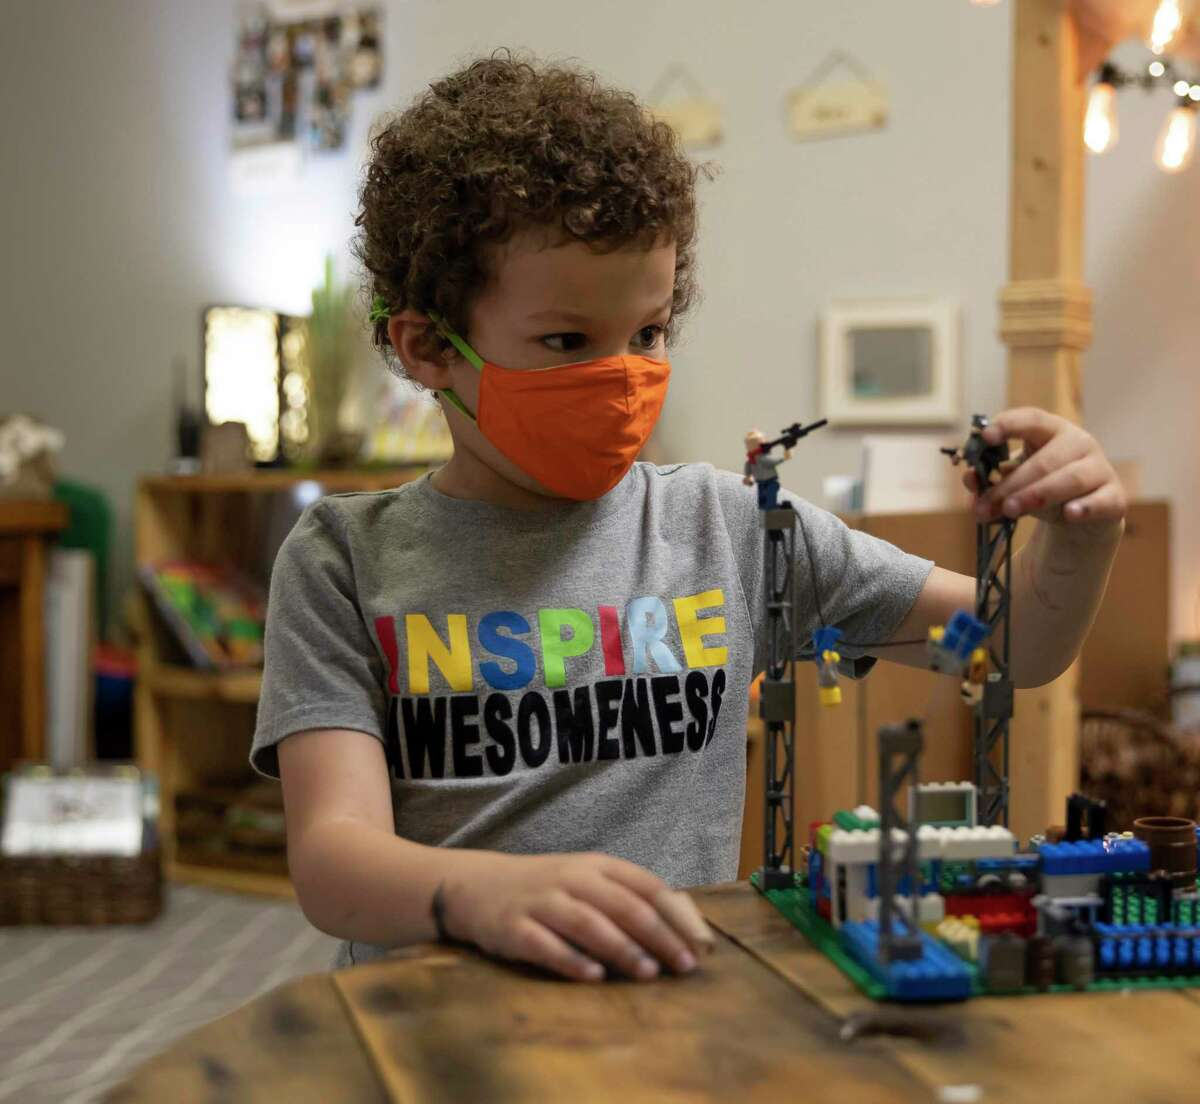 Cormac plays with a set of building blocks at the Discovery School of Innovation in The Woodlands, Thursday, Sept. 24, 2020. The new school opened this year and plans to expand enrollment in the future.